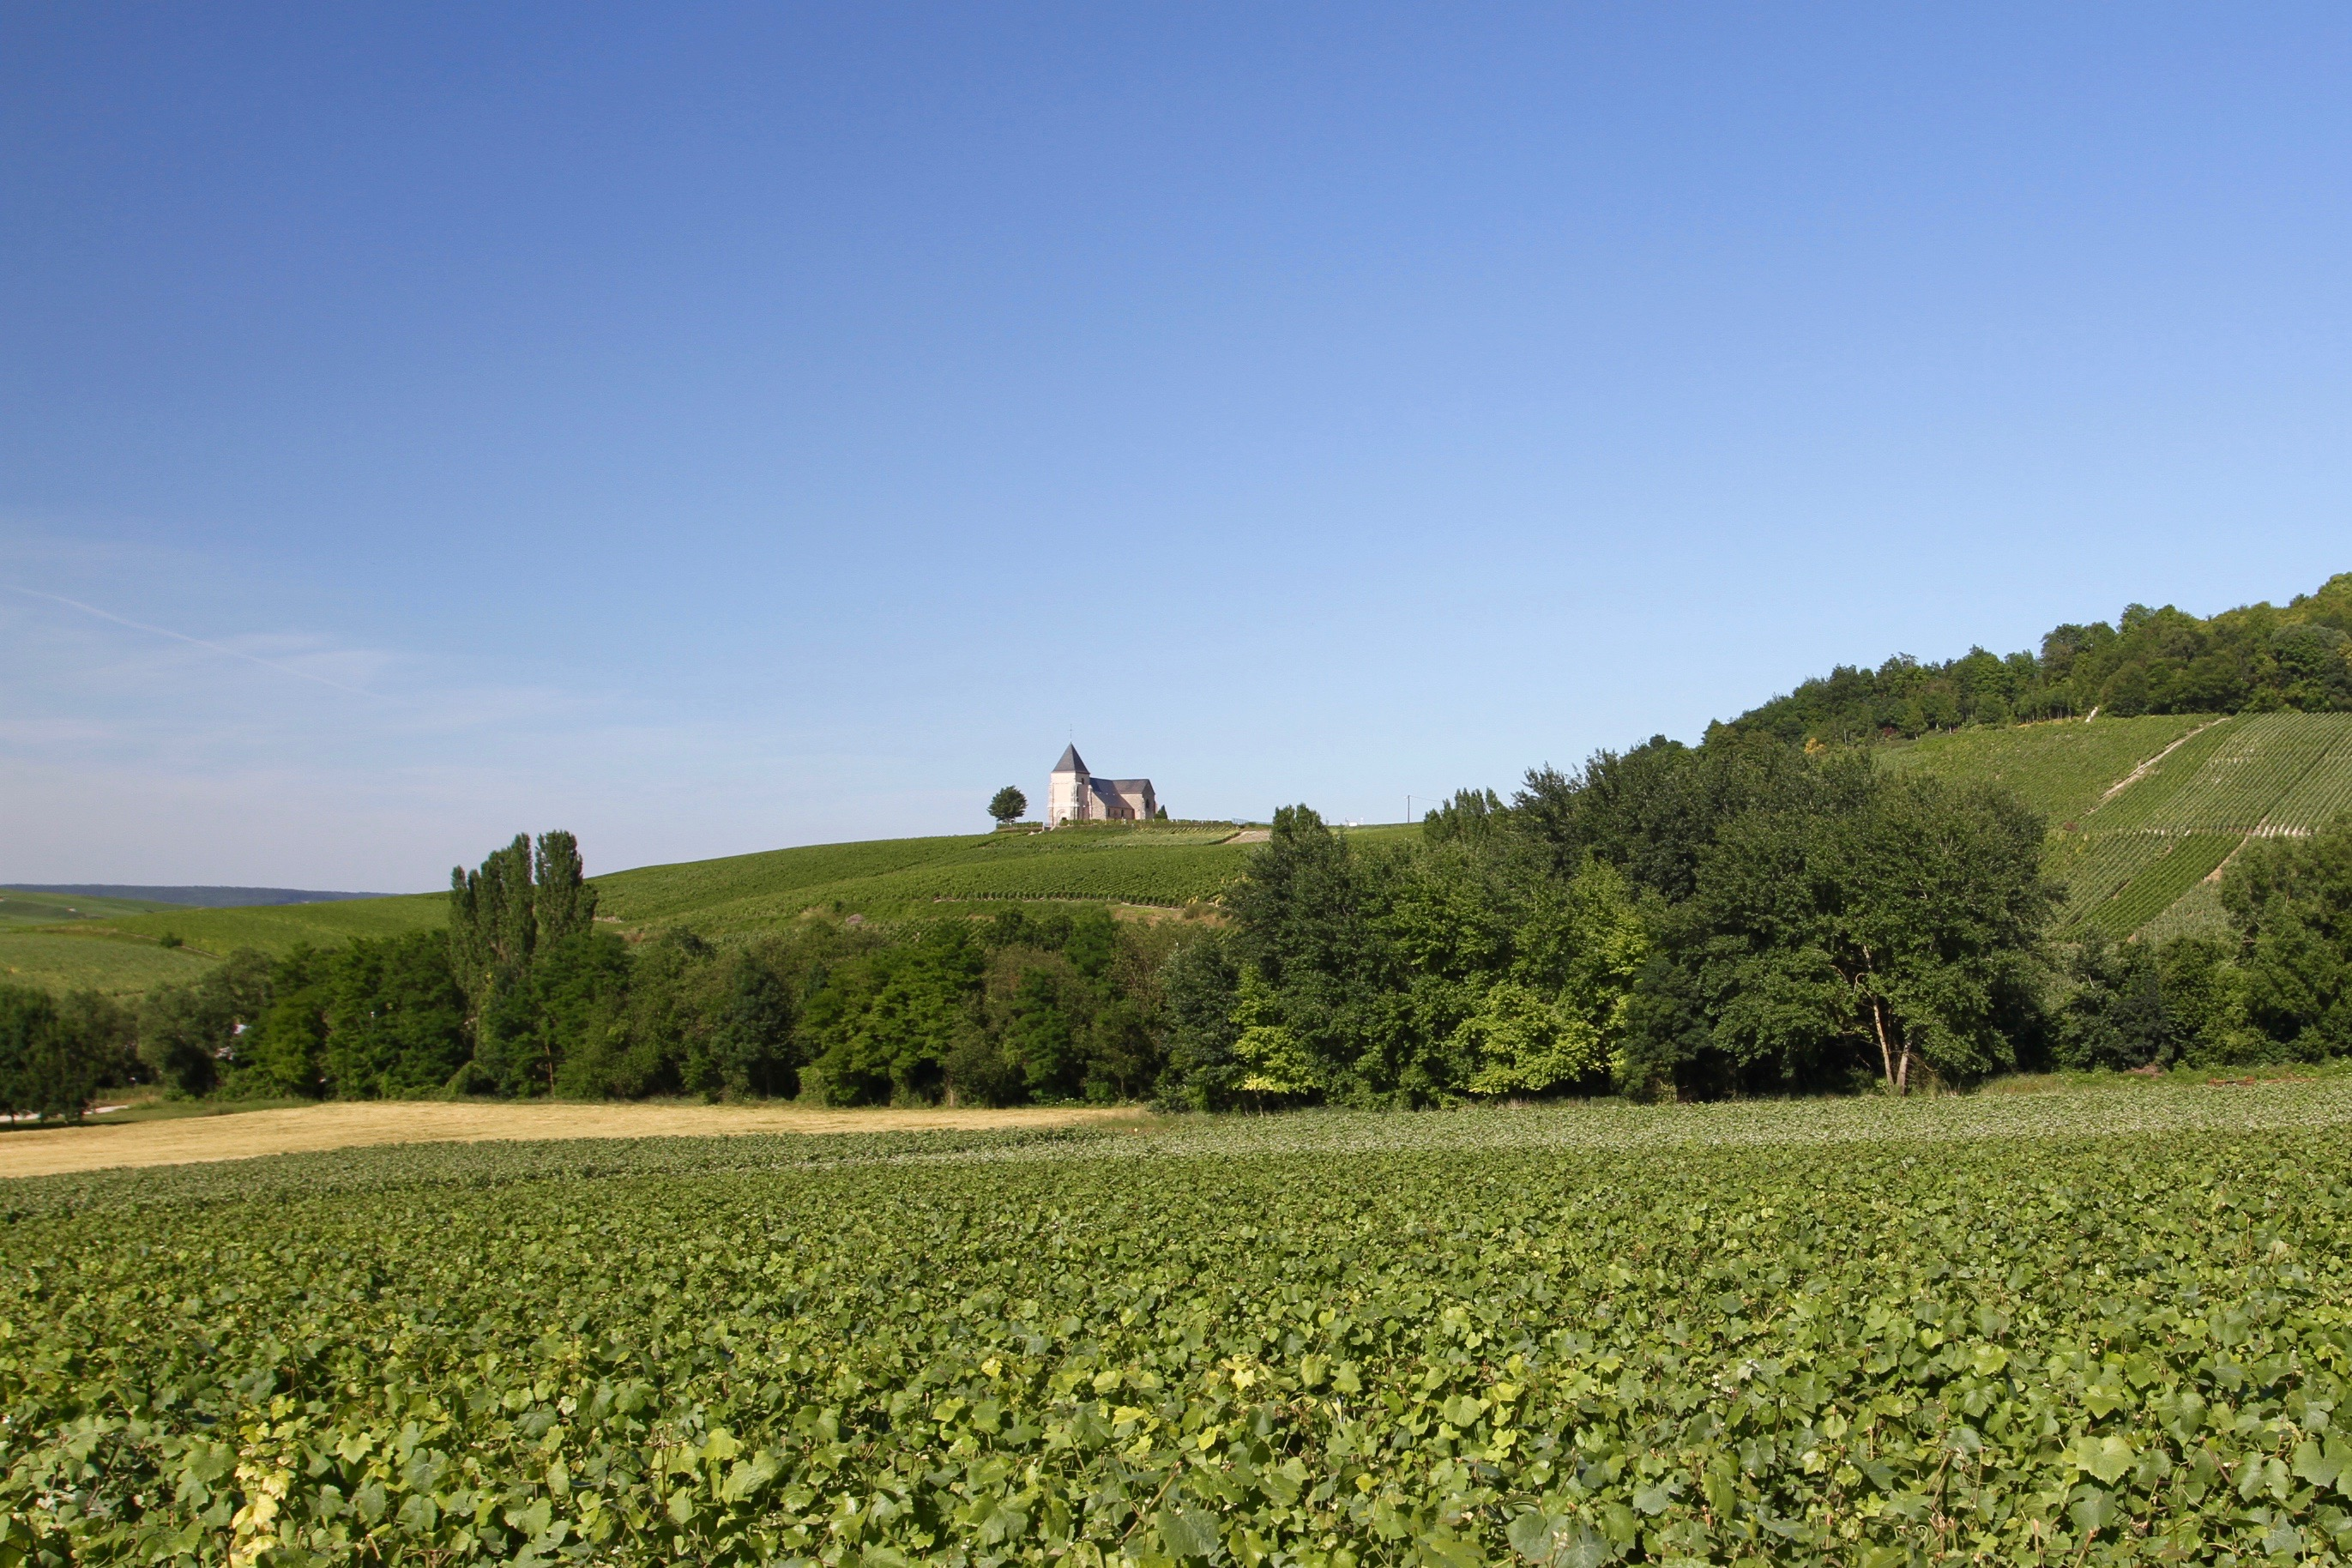 Vallee de la marne champagne route notesfromcamelidcountry for Champagne marne